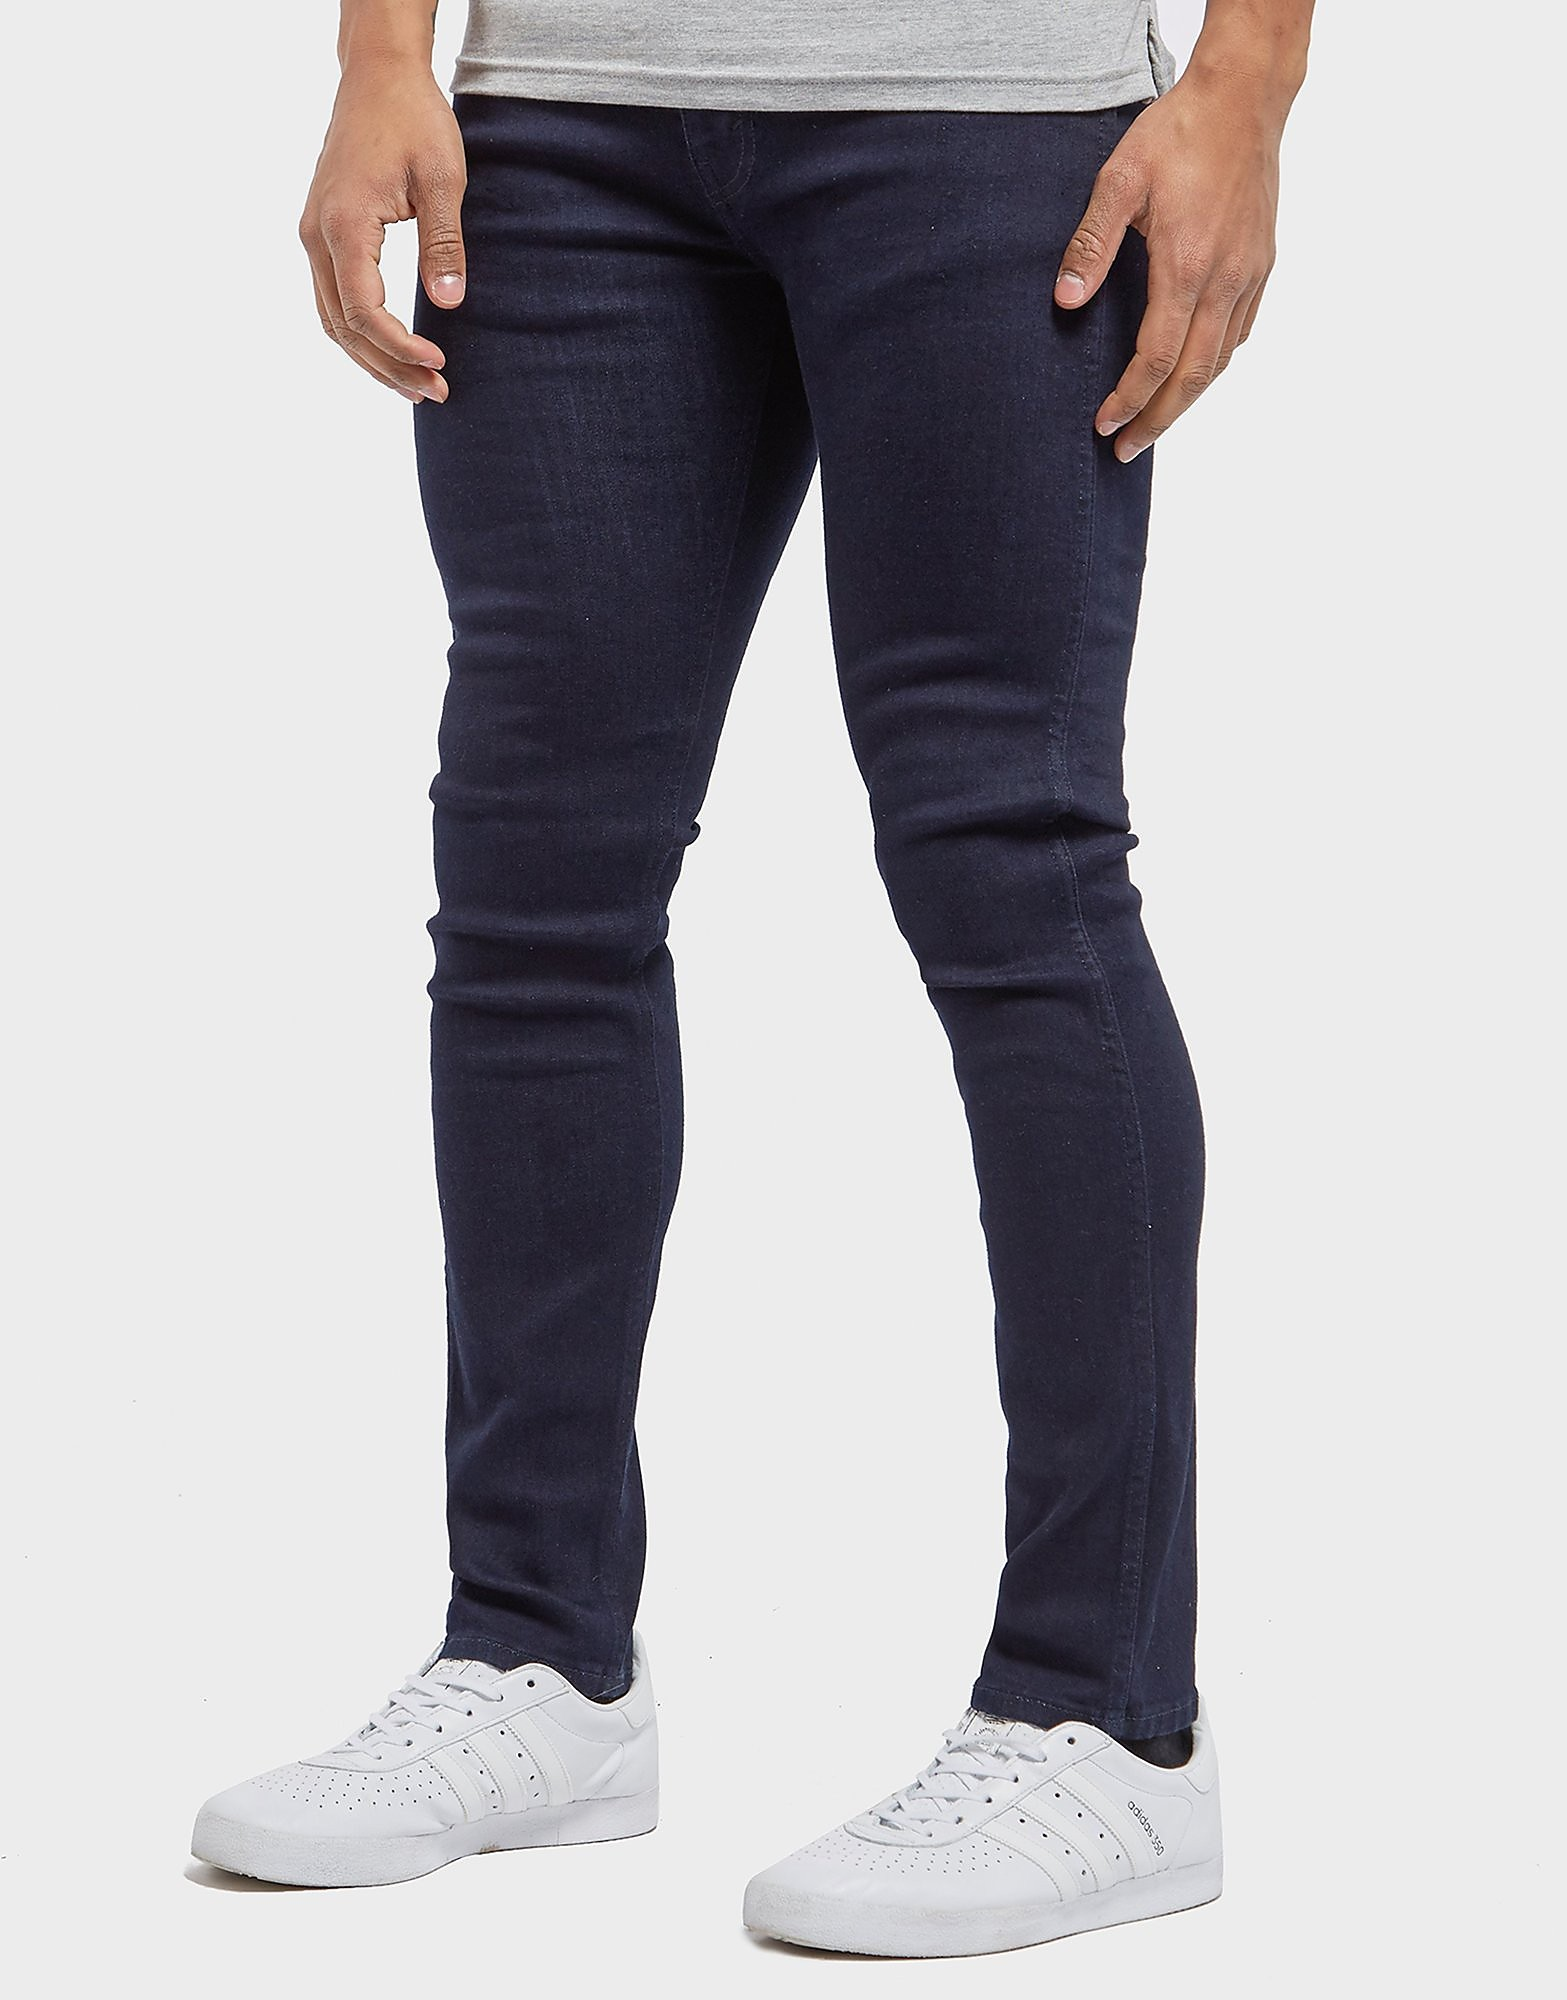 Levis Line 8 Skinny Jeans